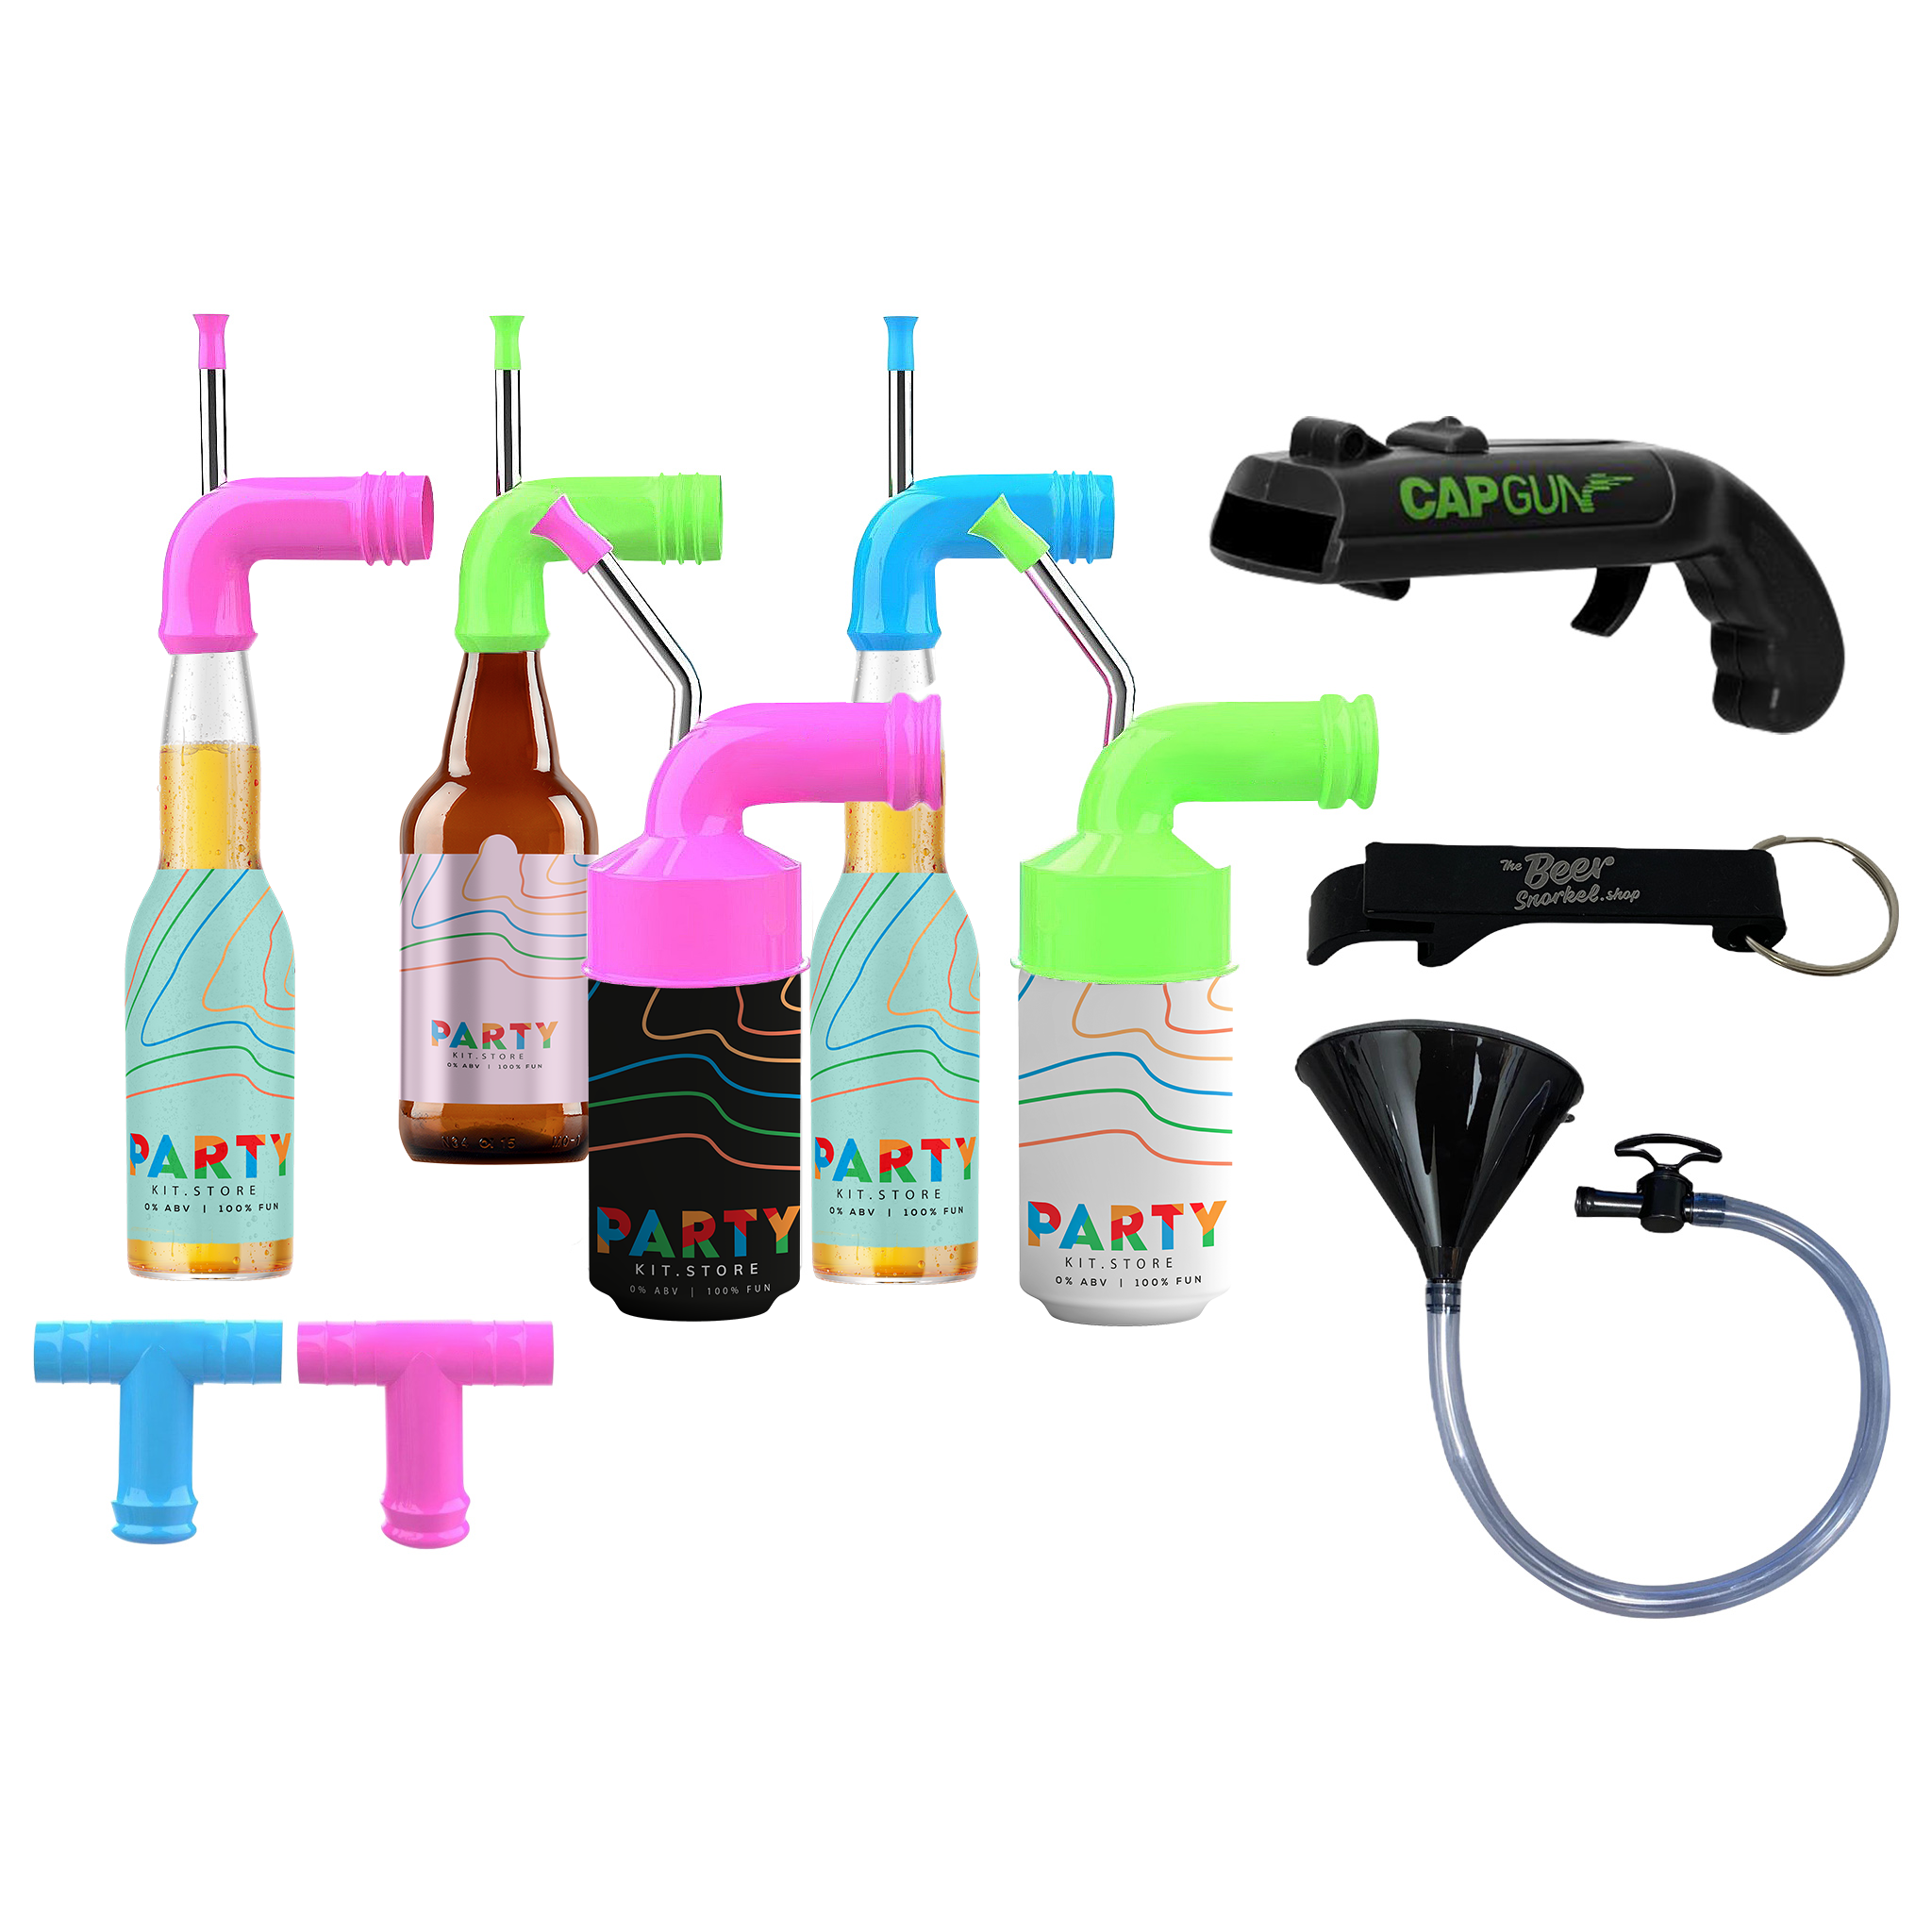 Party Snorkel Set, Party Supplies by Drinks Shop